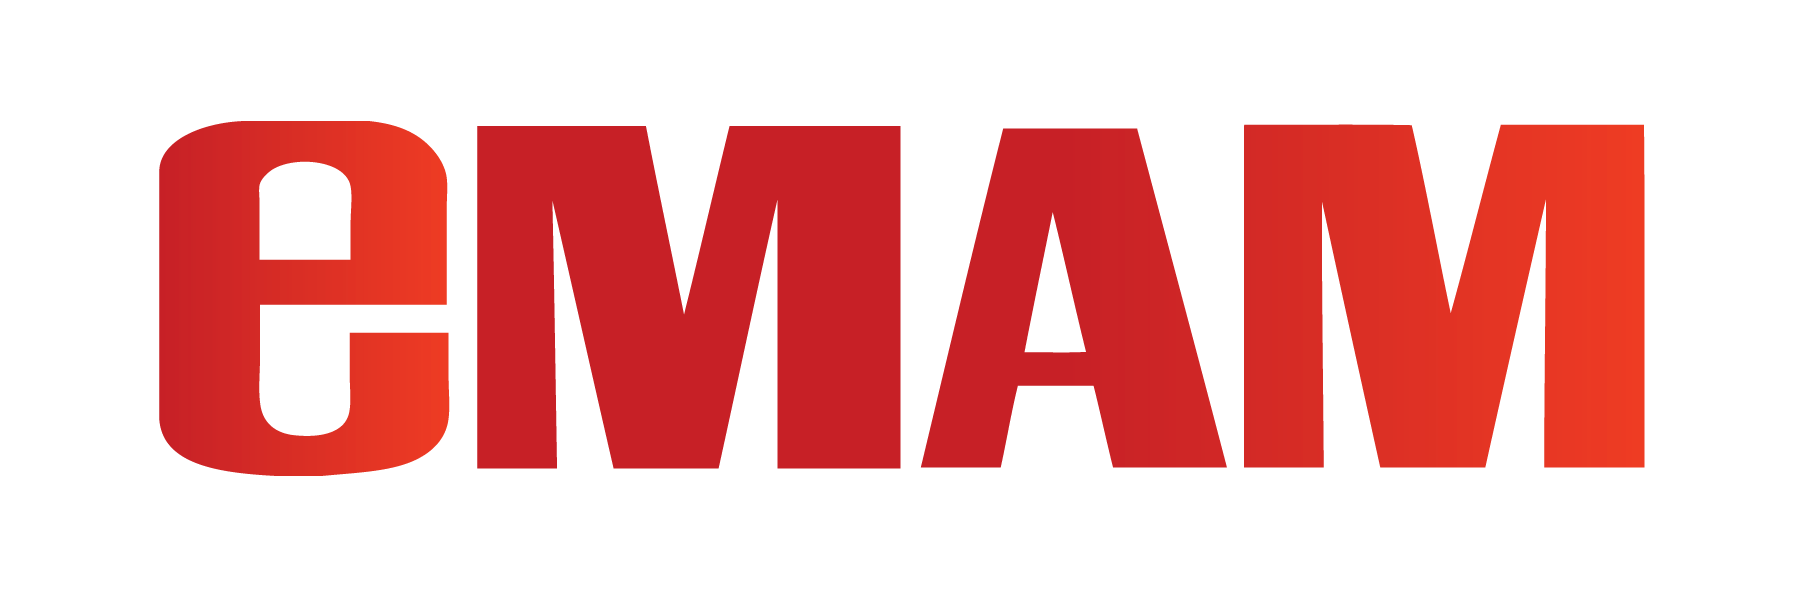 eMAM logo Transparent